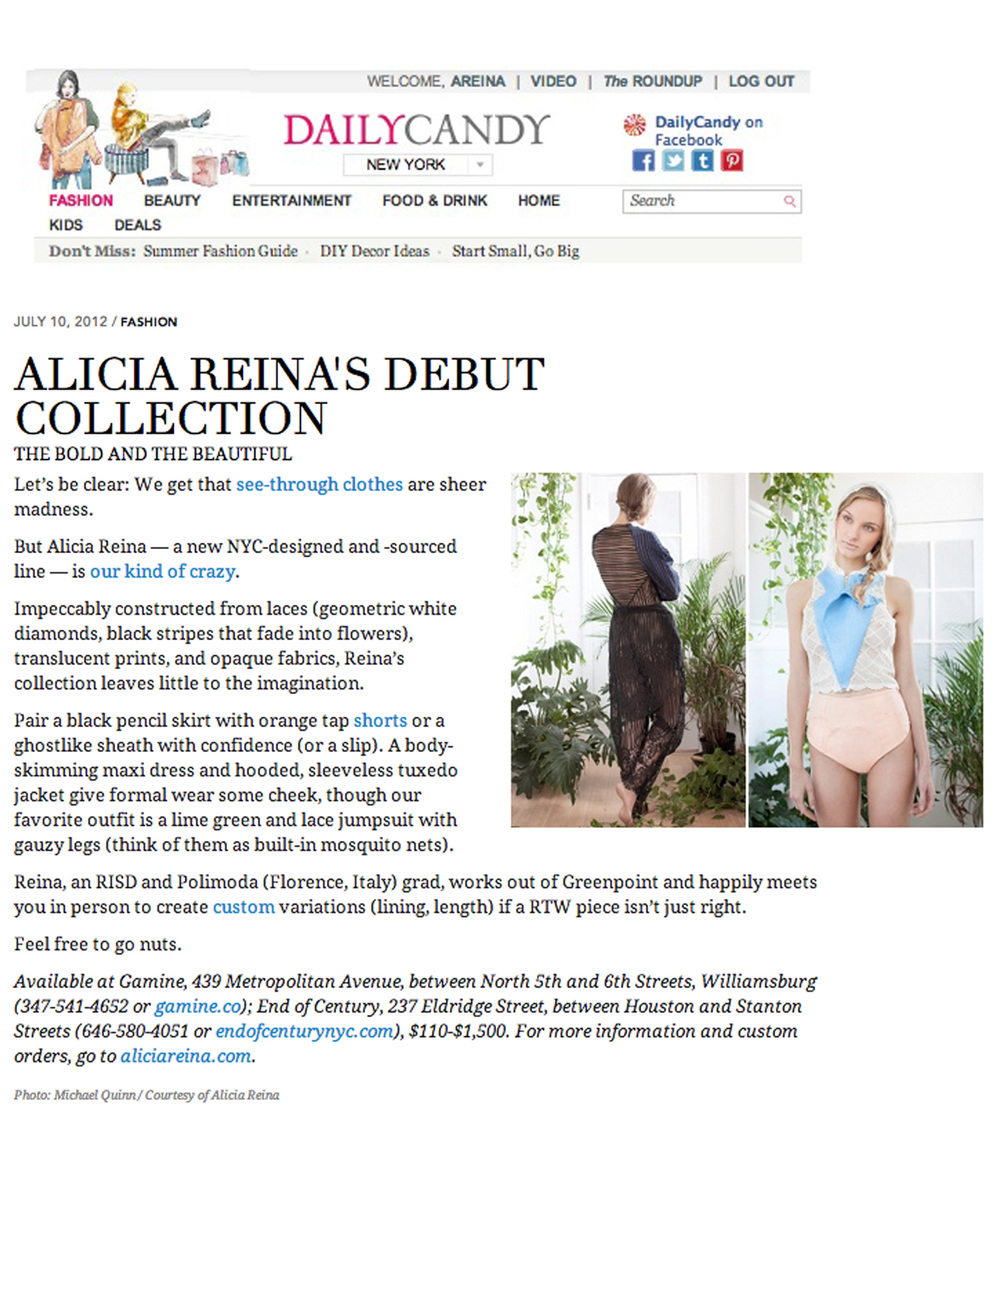 Alicia Reina's Debut Collection